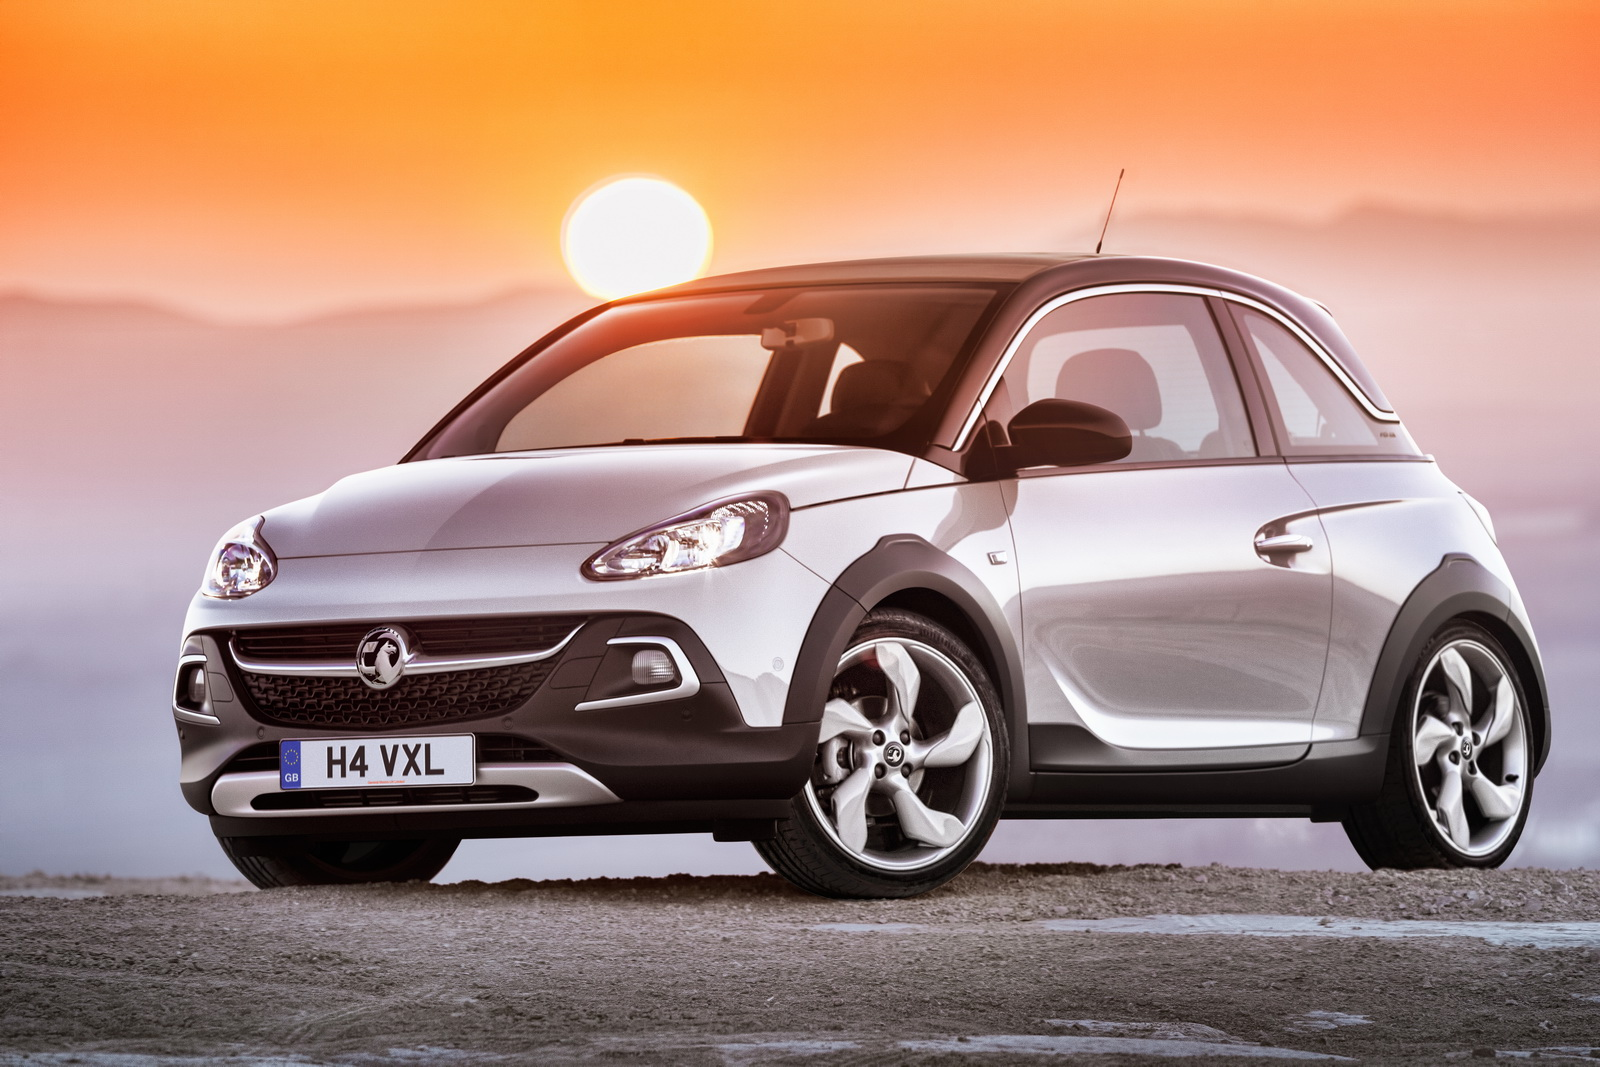 new vauxhall adam unlimited brings more personalisation options. Black Bedroom Furniture Sets. Home Design Ideas